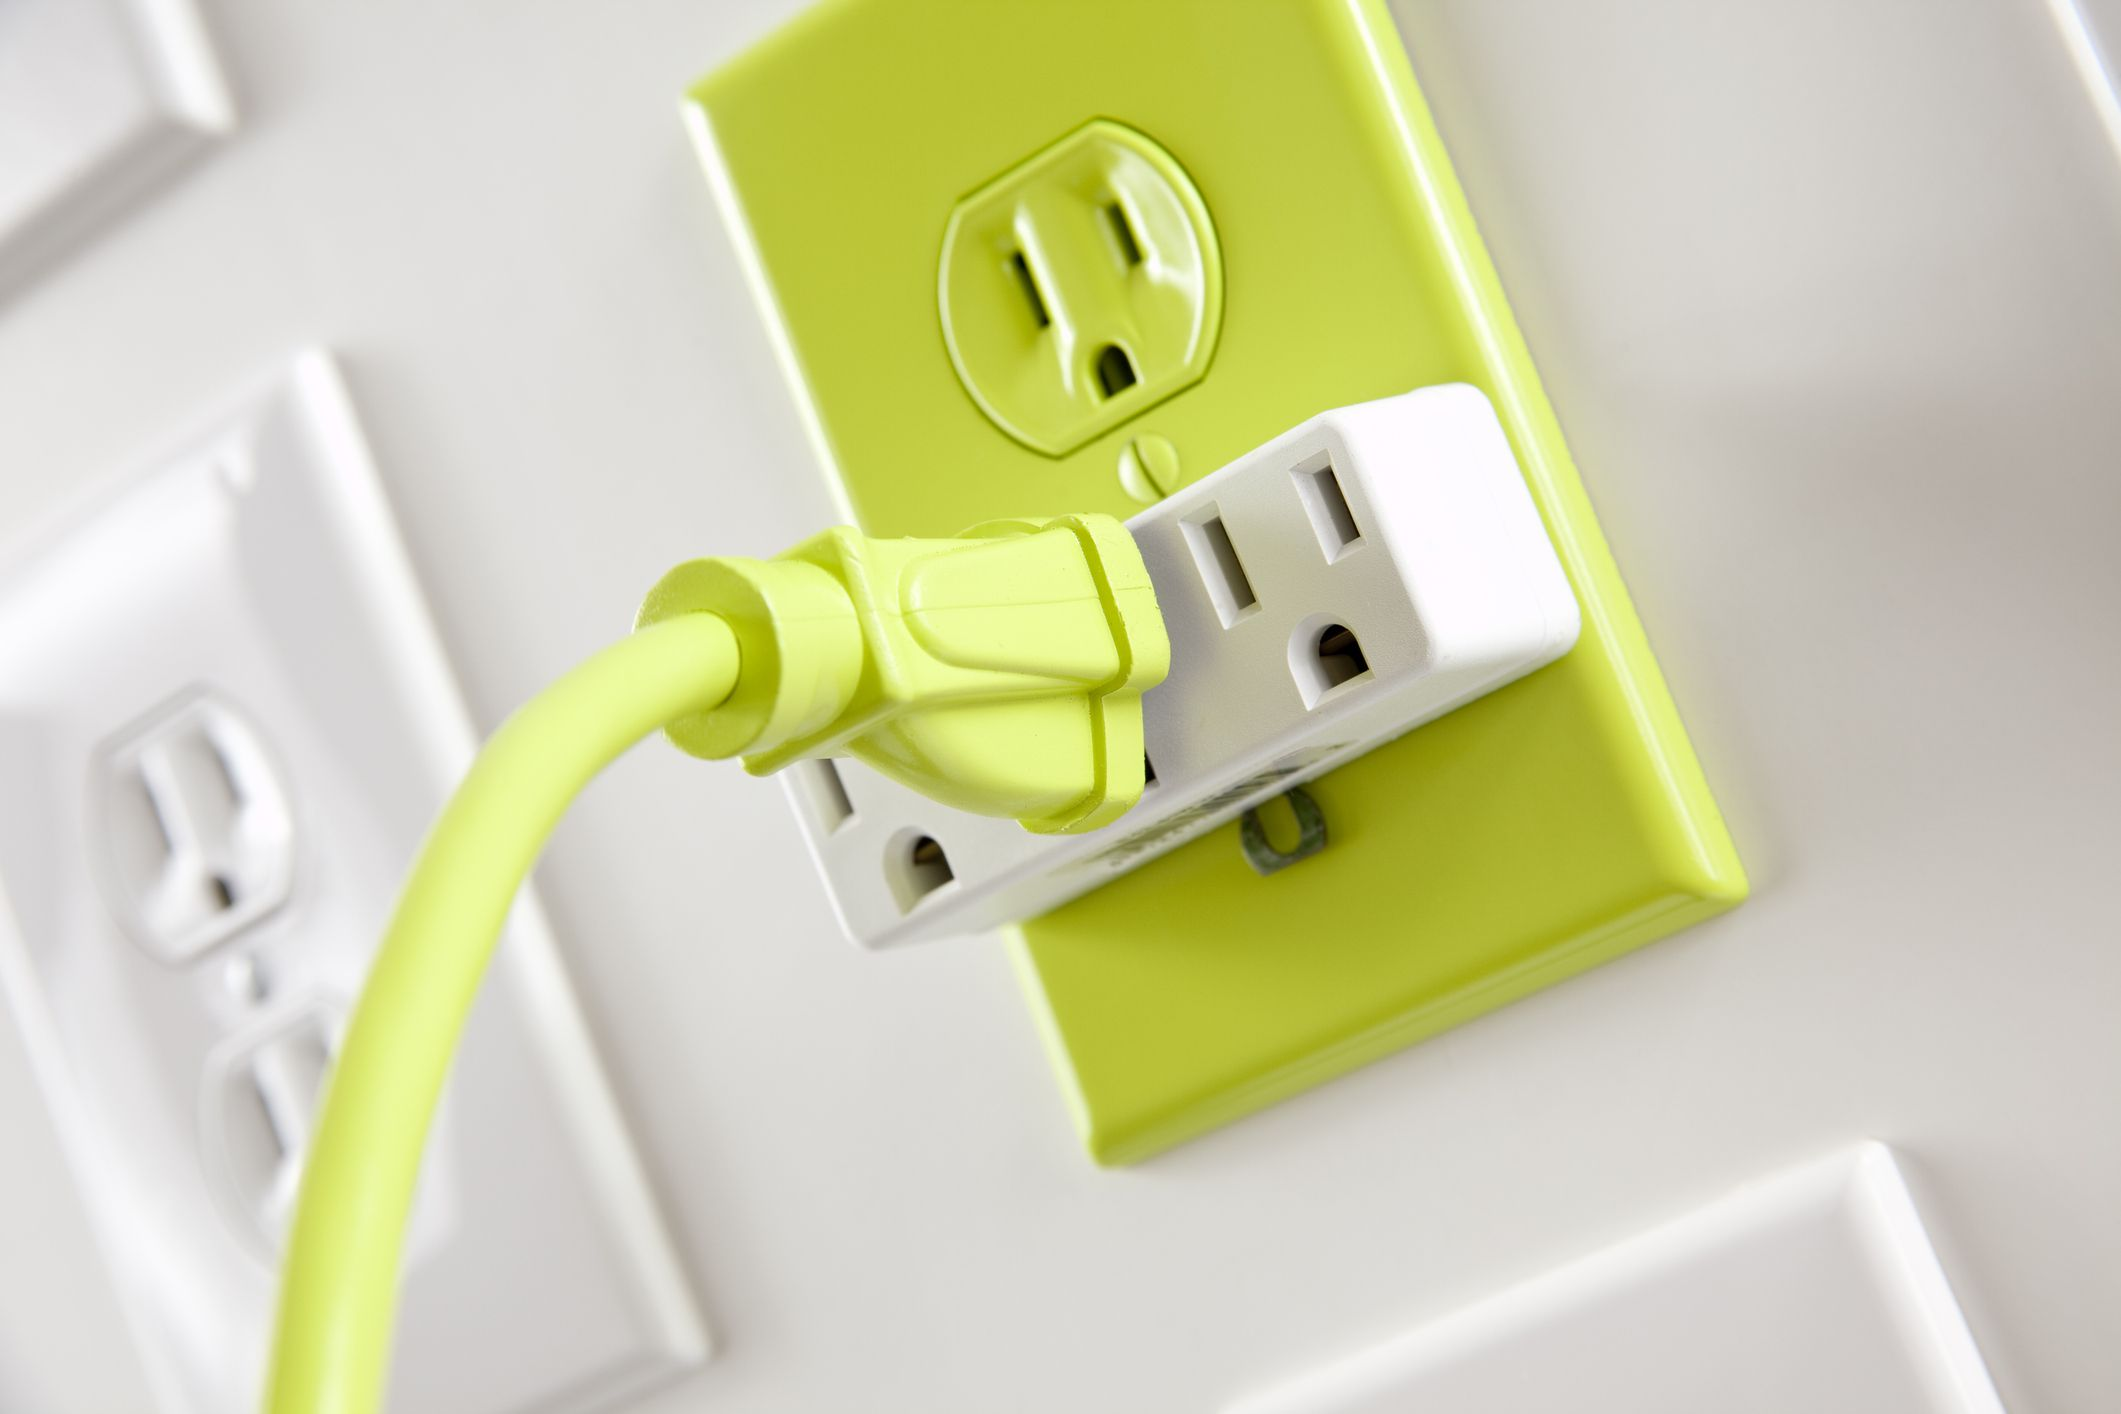 Why Plug Adapters Should Not Be Used Outlet 3 Prong Oven Electrical Cord Wiring 4 To